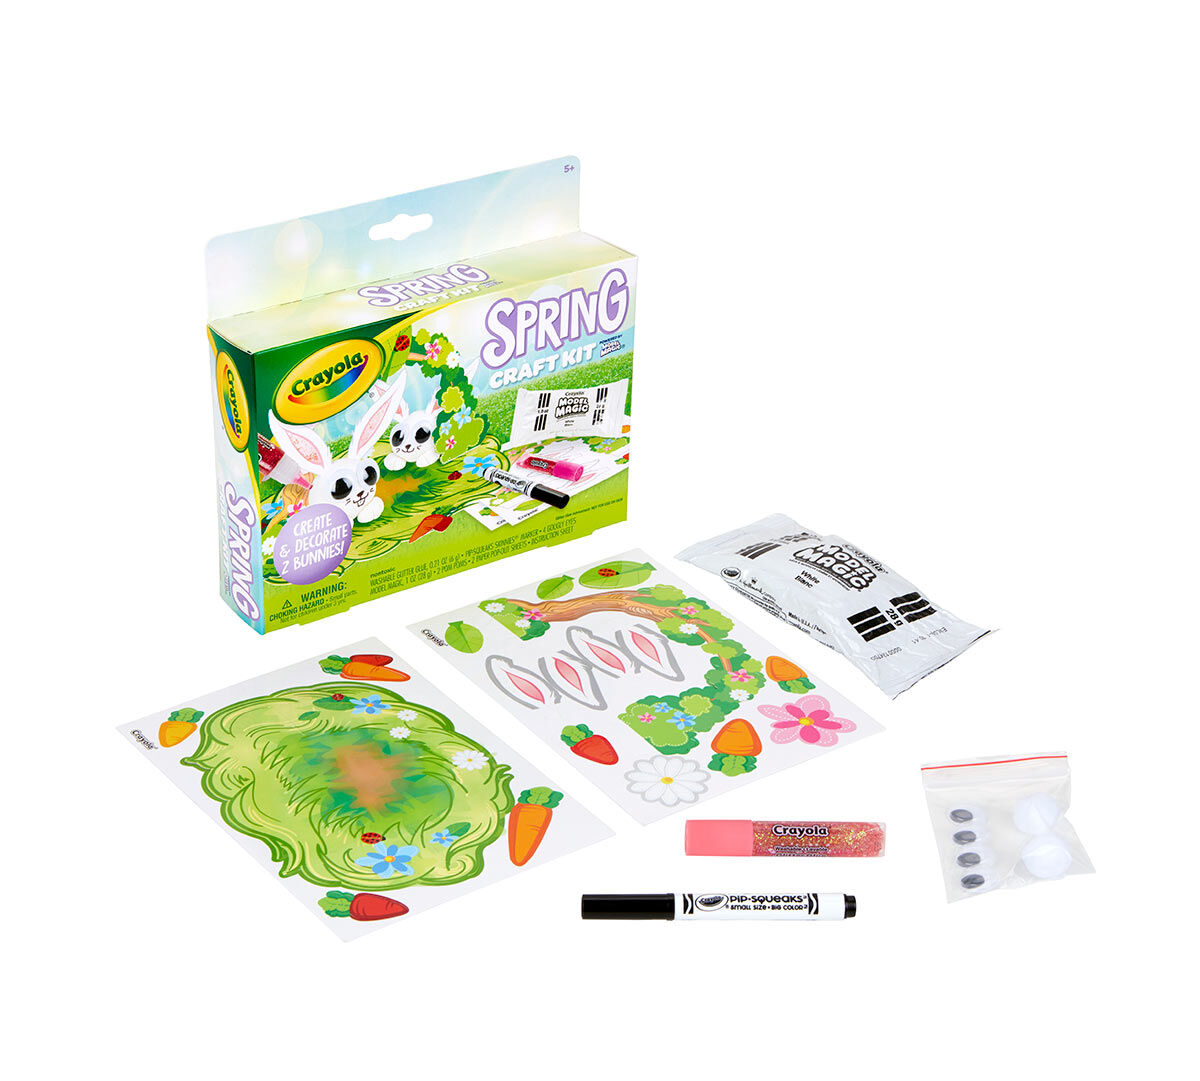 EASTER BUNNY SPRING TIME ACTIVITY SET COLORING BOOK CRAYONS SCRIBBLE PAD